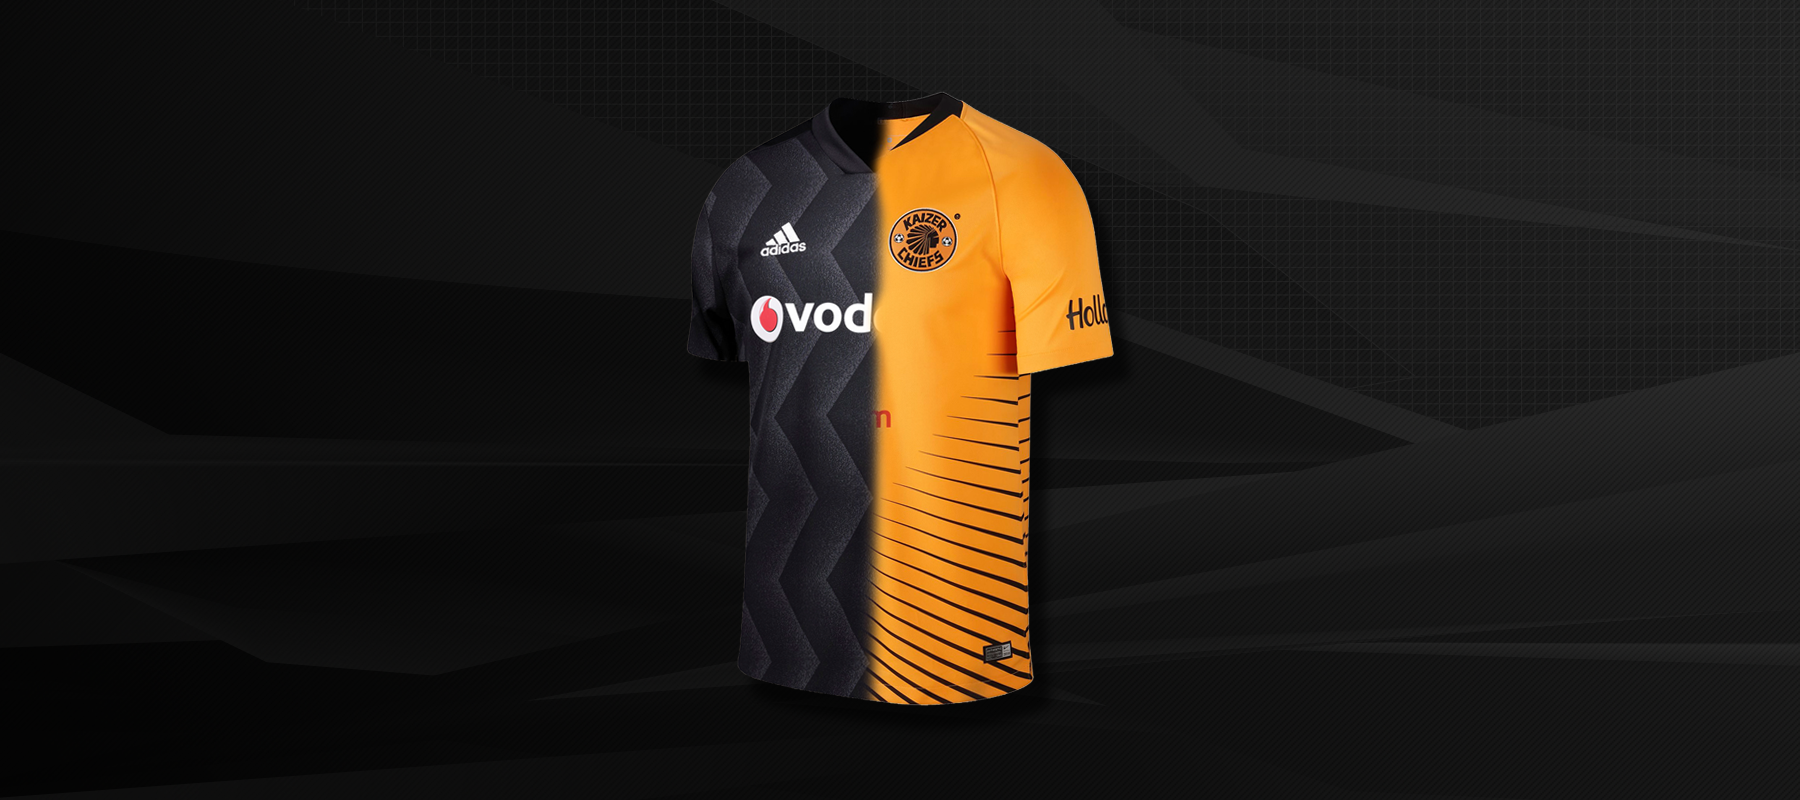 WIN A CHIEFS OR PIRATES JERSEY SIGNED BY JIMMY TAU